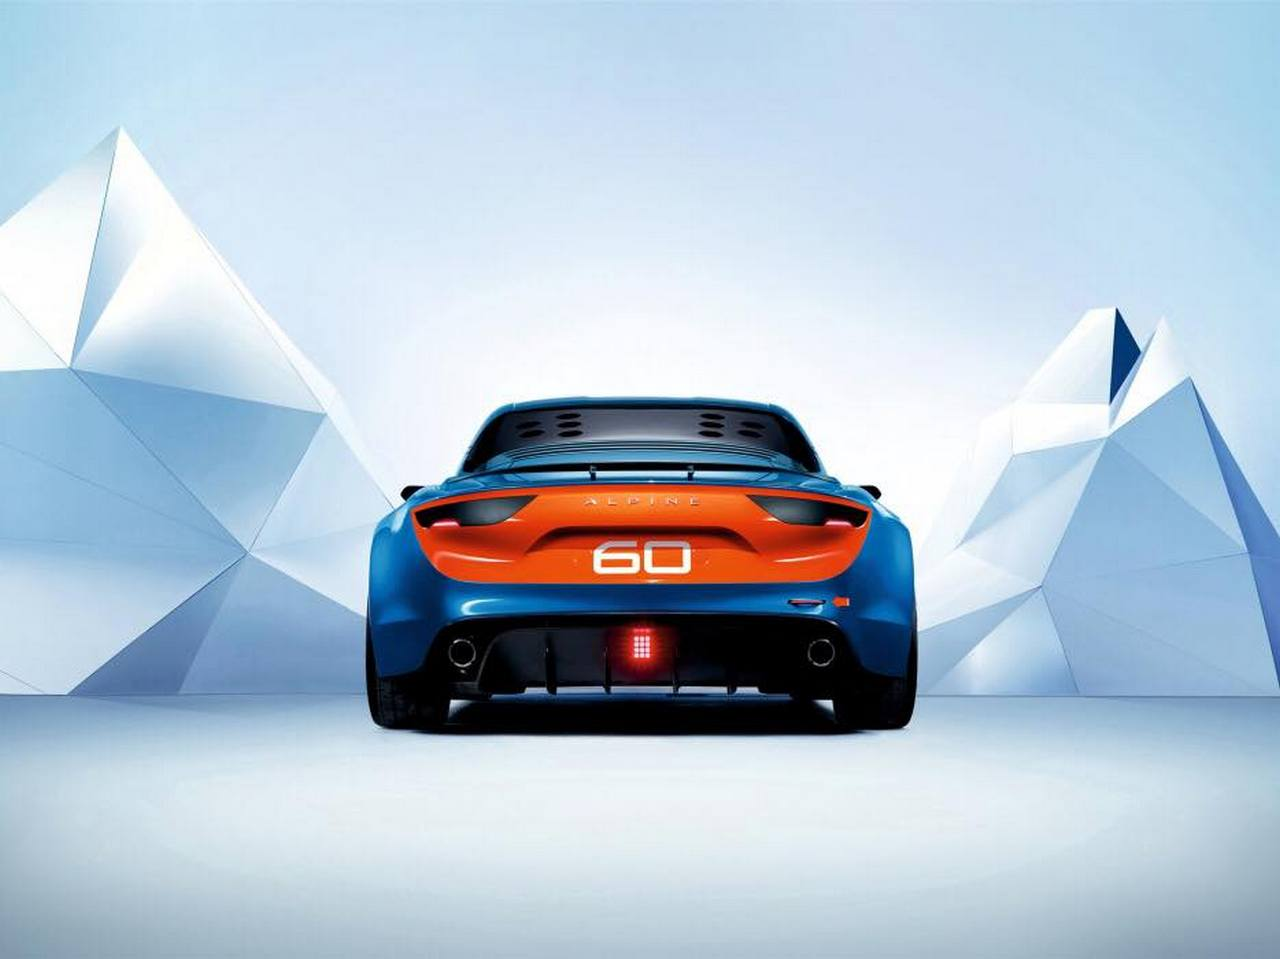 renault-alpine-celebration-concept_0-100-8